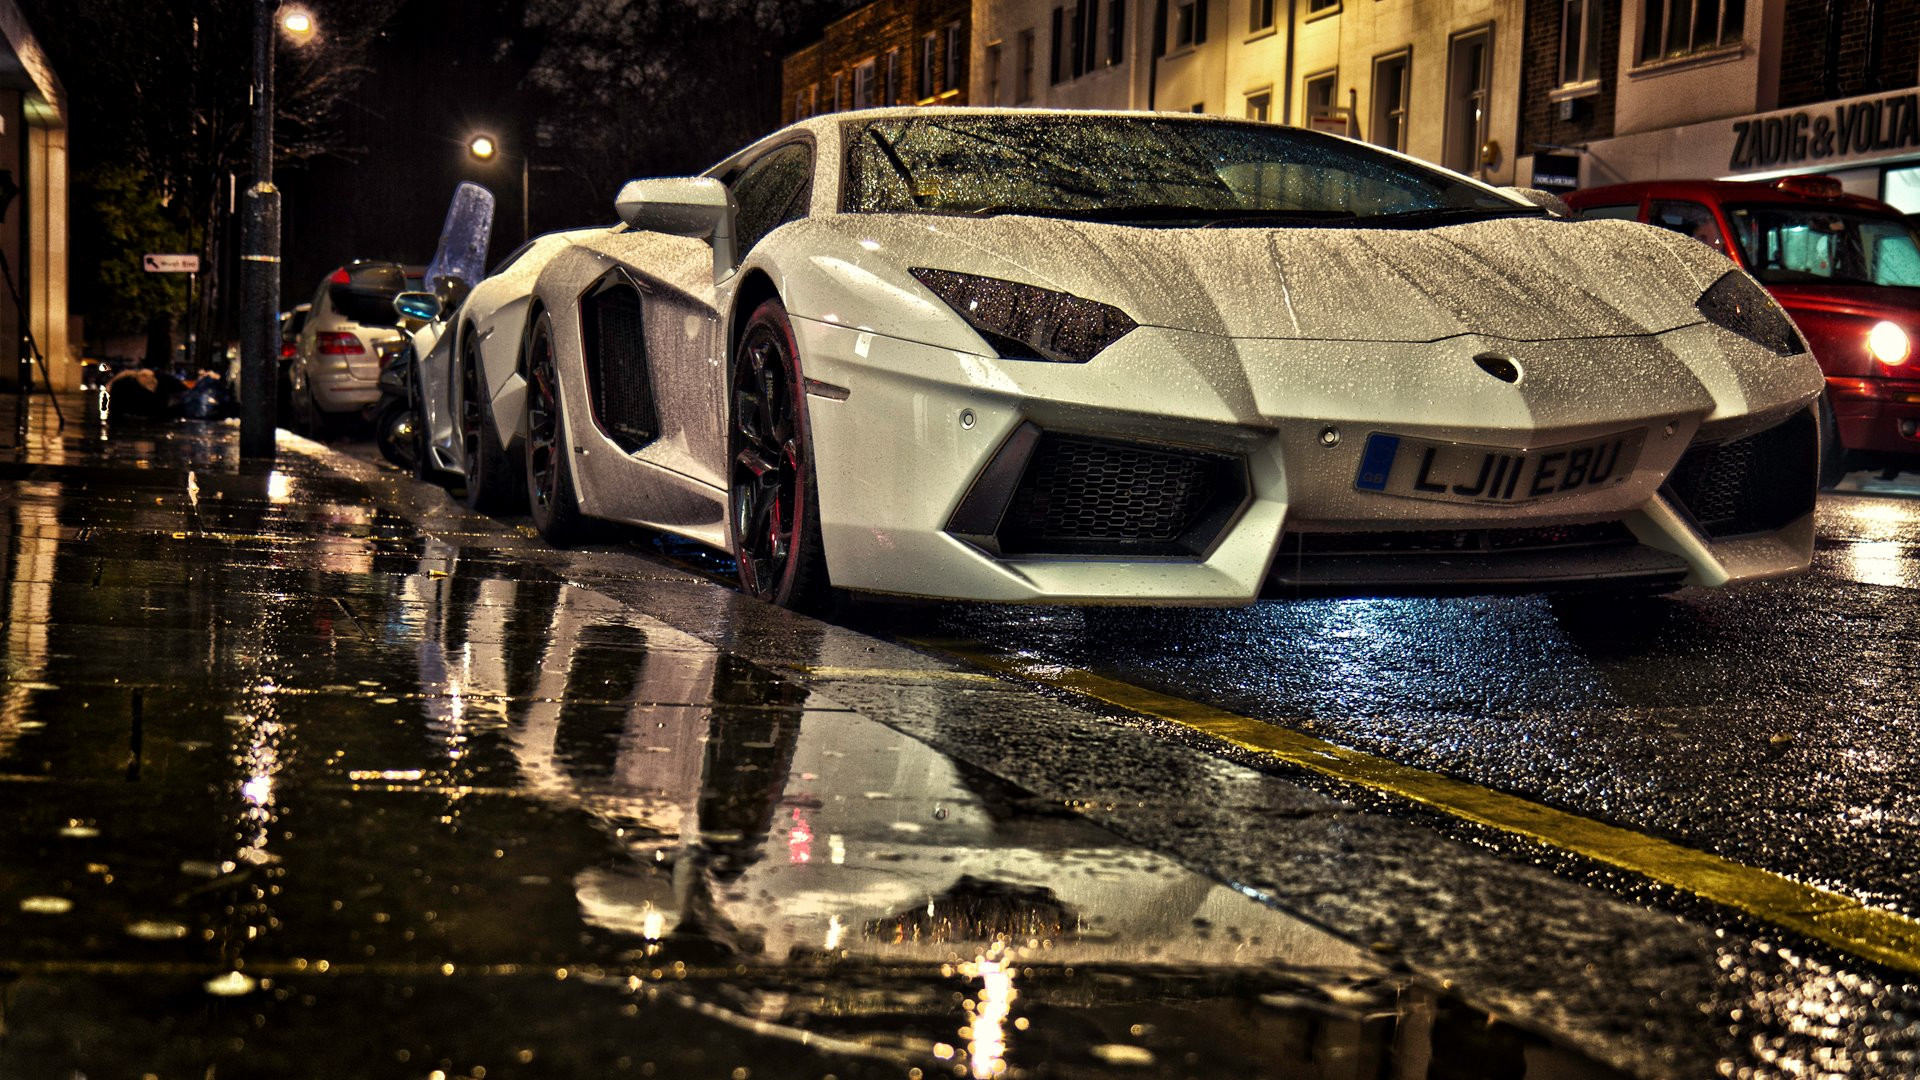 Beautiful Wallpaper Night Lamborghini - Lamborghini-Wallpaper-20-1920x1080  Perfect Image Reference-252175.jpg